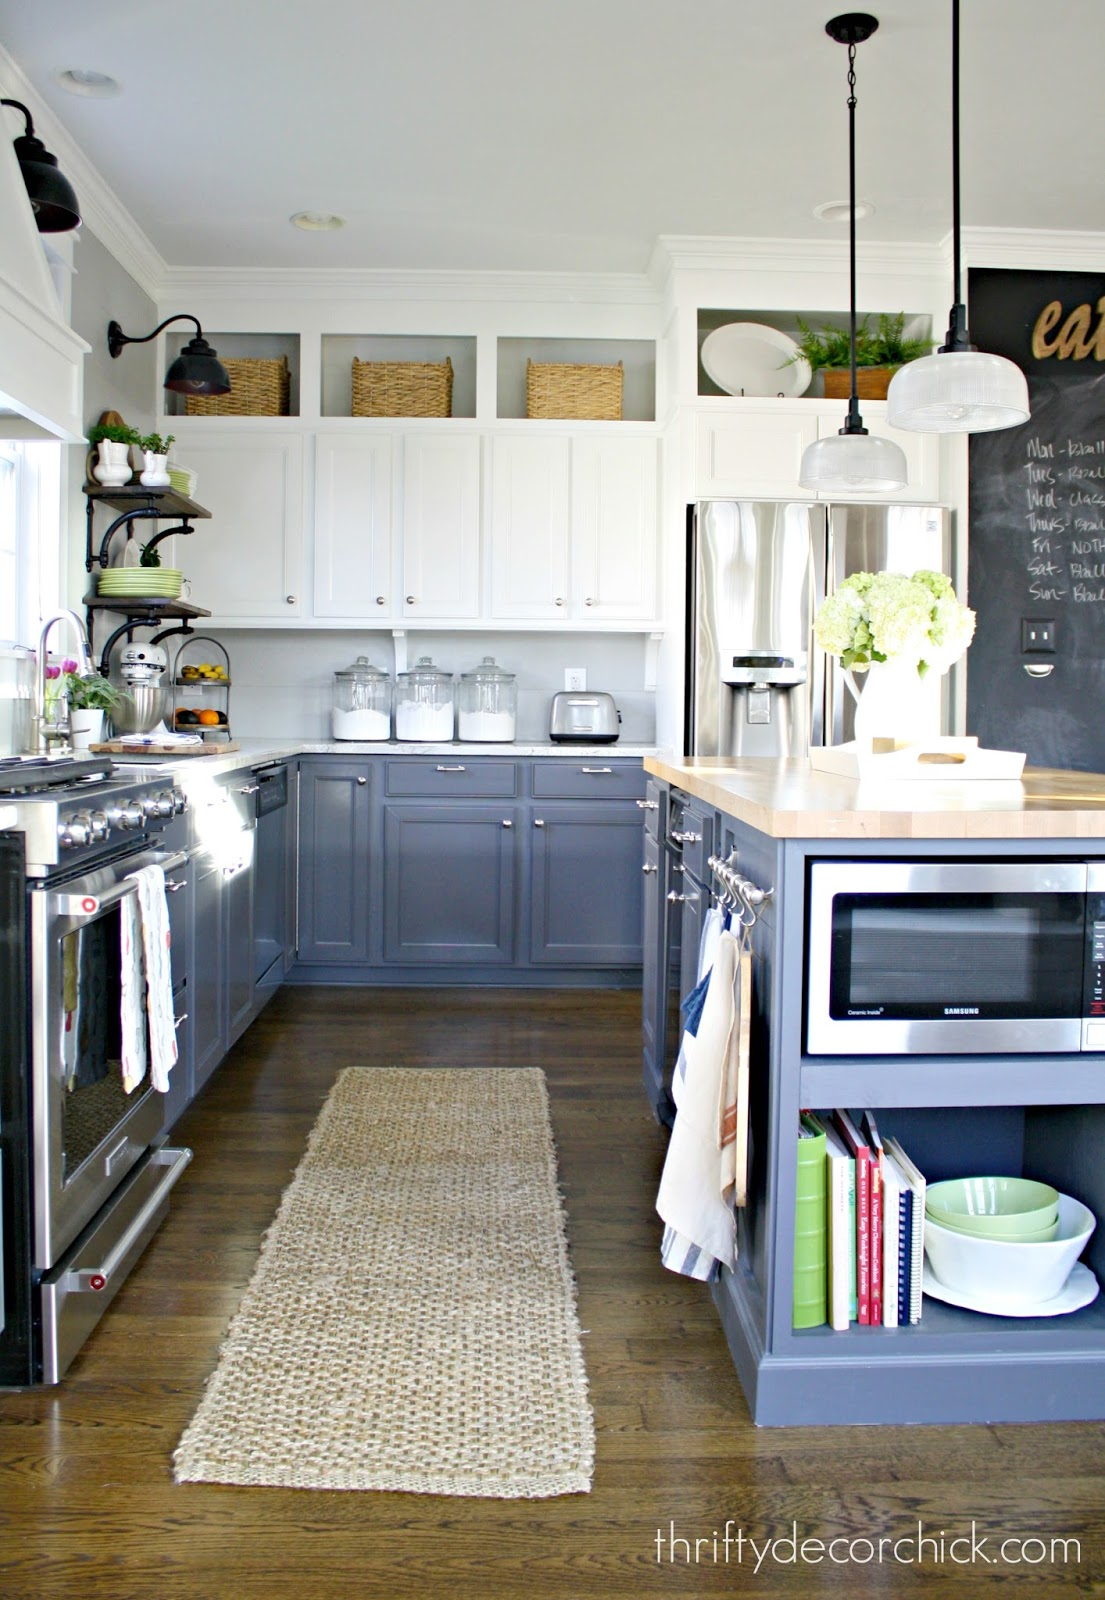 surround above ideas the panel hack cabinets size side full space put ikea kitchen refrigerator fridge of kitchenrefrigerator panelideas cabinet kit